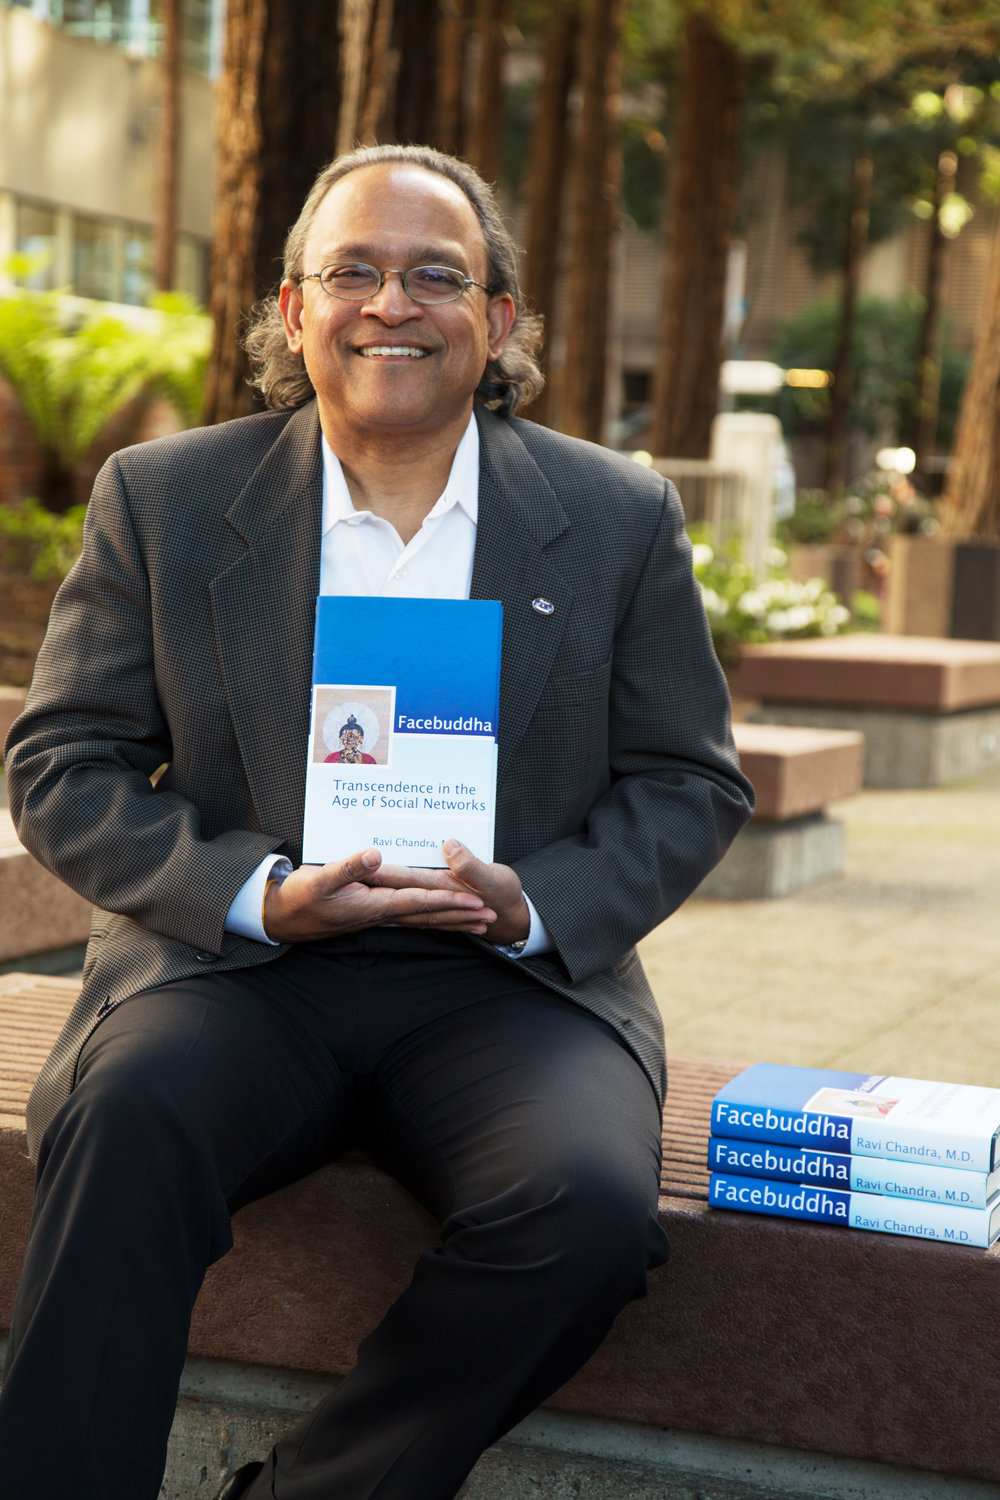 Dr. Ravi Chandra, author of 'Facebuddha - Transcendence in the Age of Social Media'